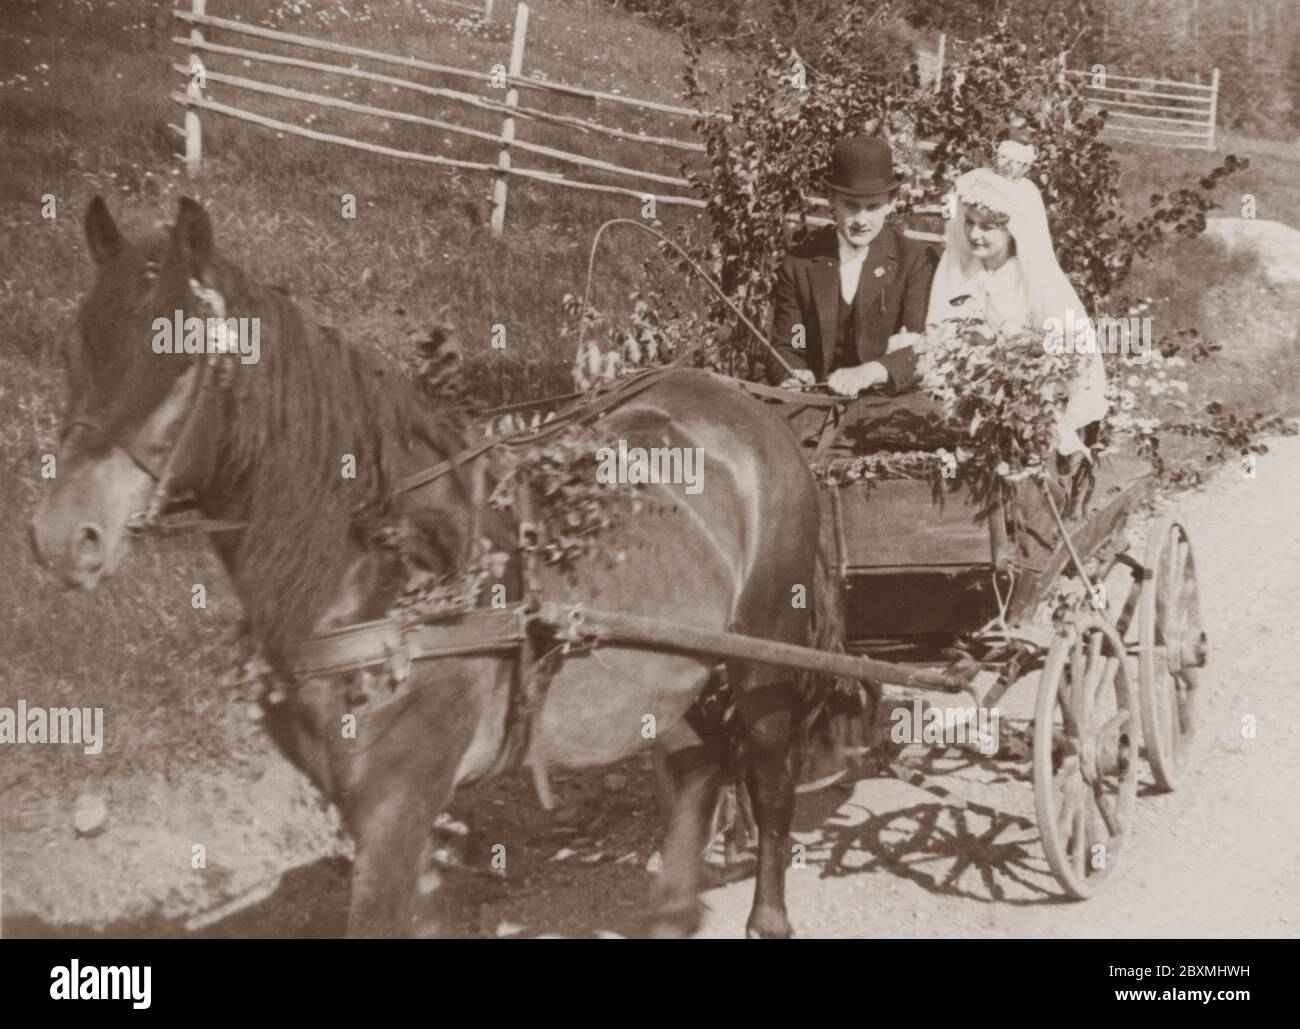 Wedding Couple In The 1930s The Newly Weds Bride And Groom Are Sitting In A Horse Drawn Wagon On A Summer Day The Wagon Is Decorated With Birch Branches And Flower Bouquets